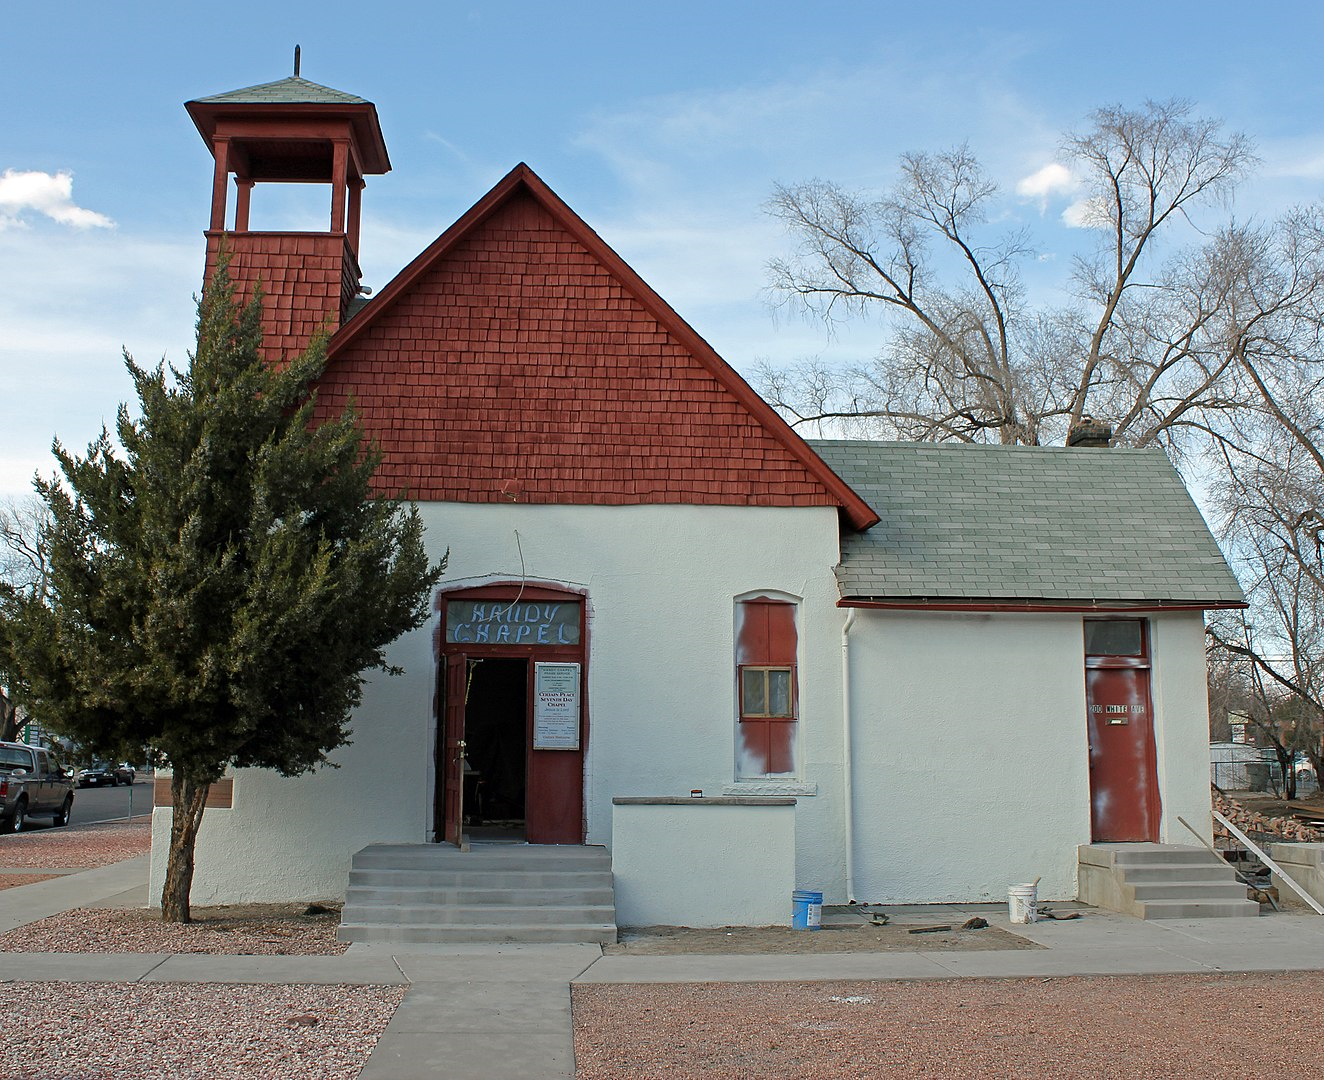 2013 photo of Handy Chapel by Jeffrey Beall